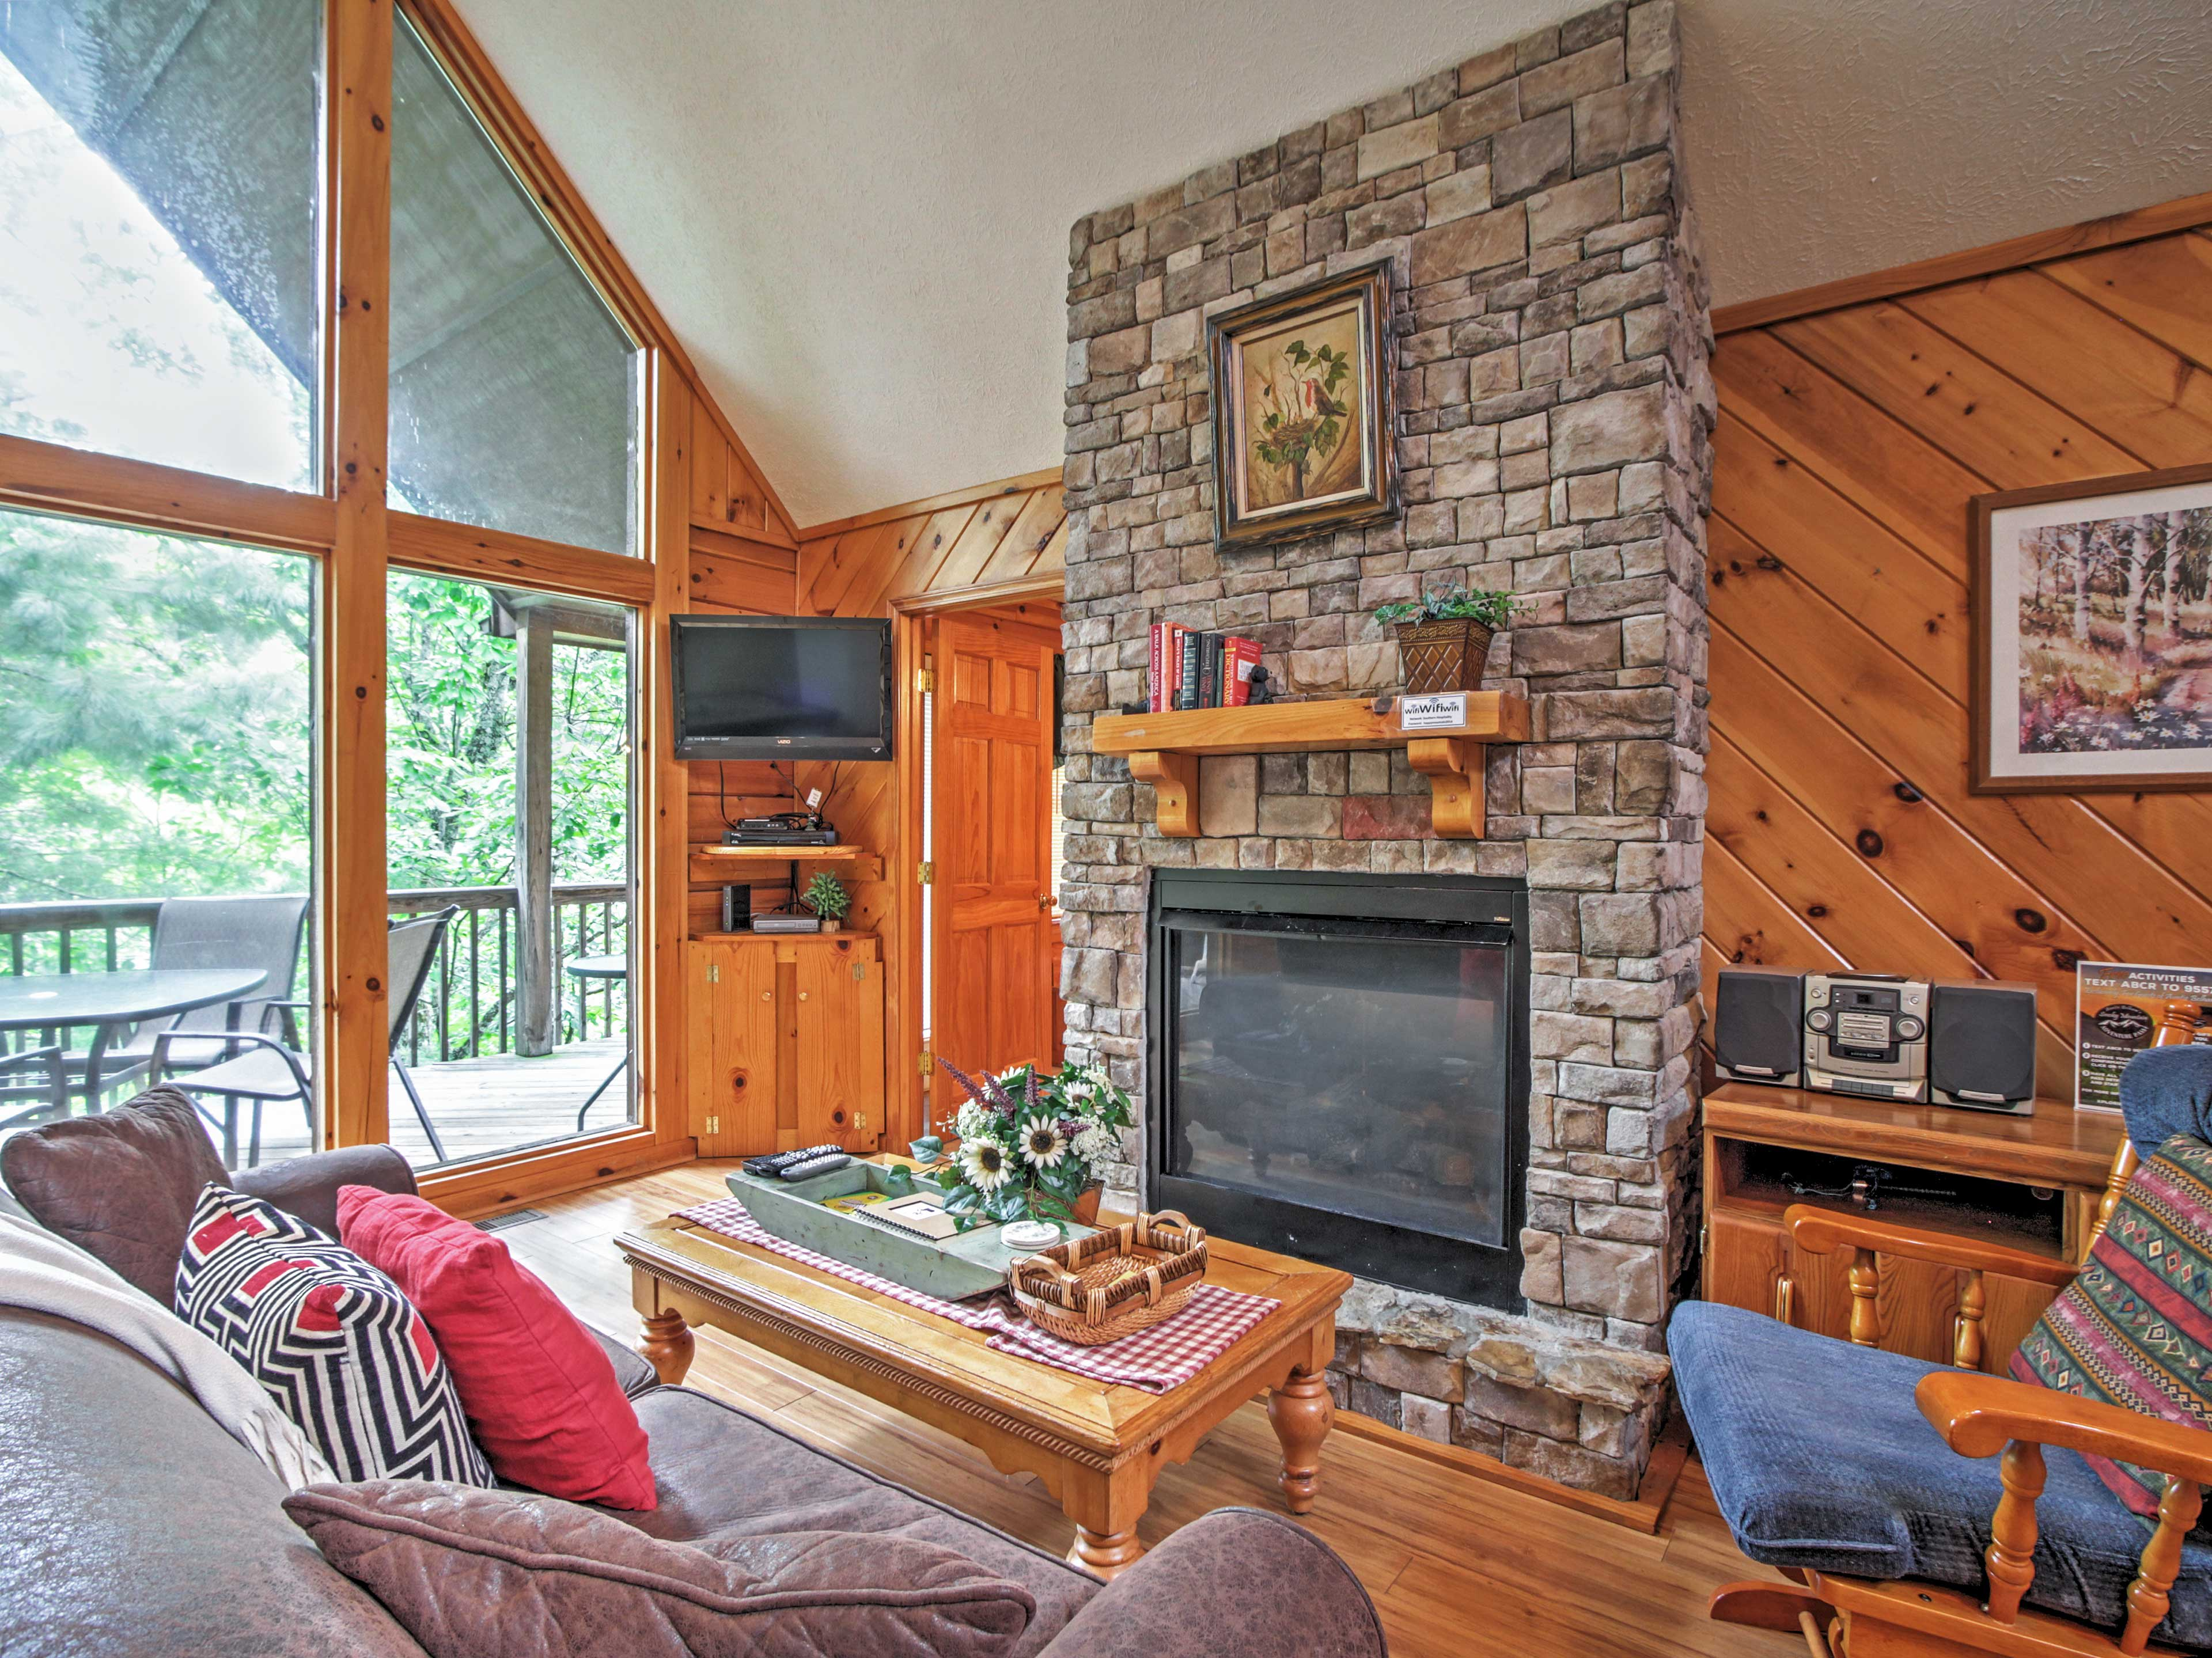 This 2-bedroom, 2-bath home sleeps up to 6 guests in a classic cabin feel.